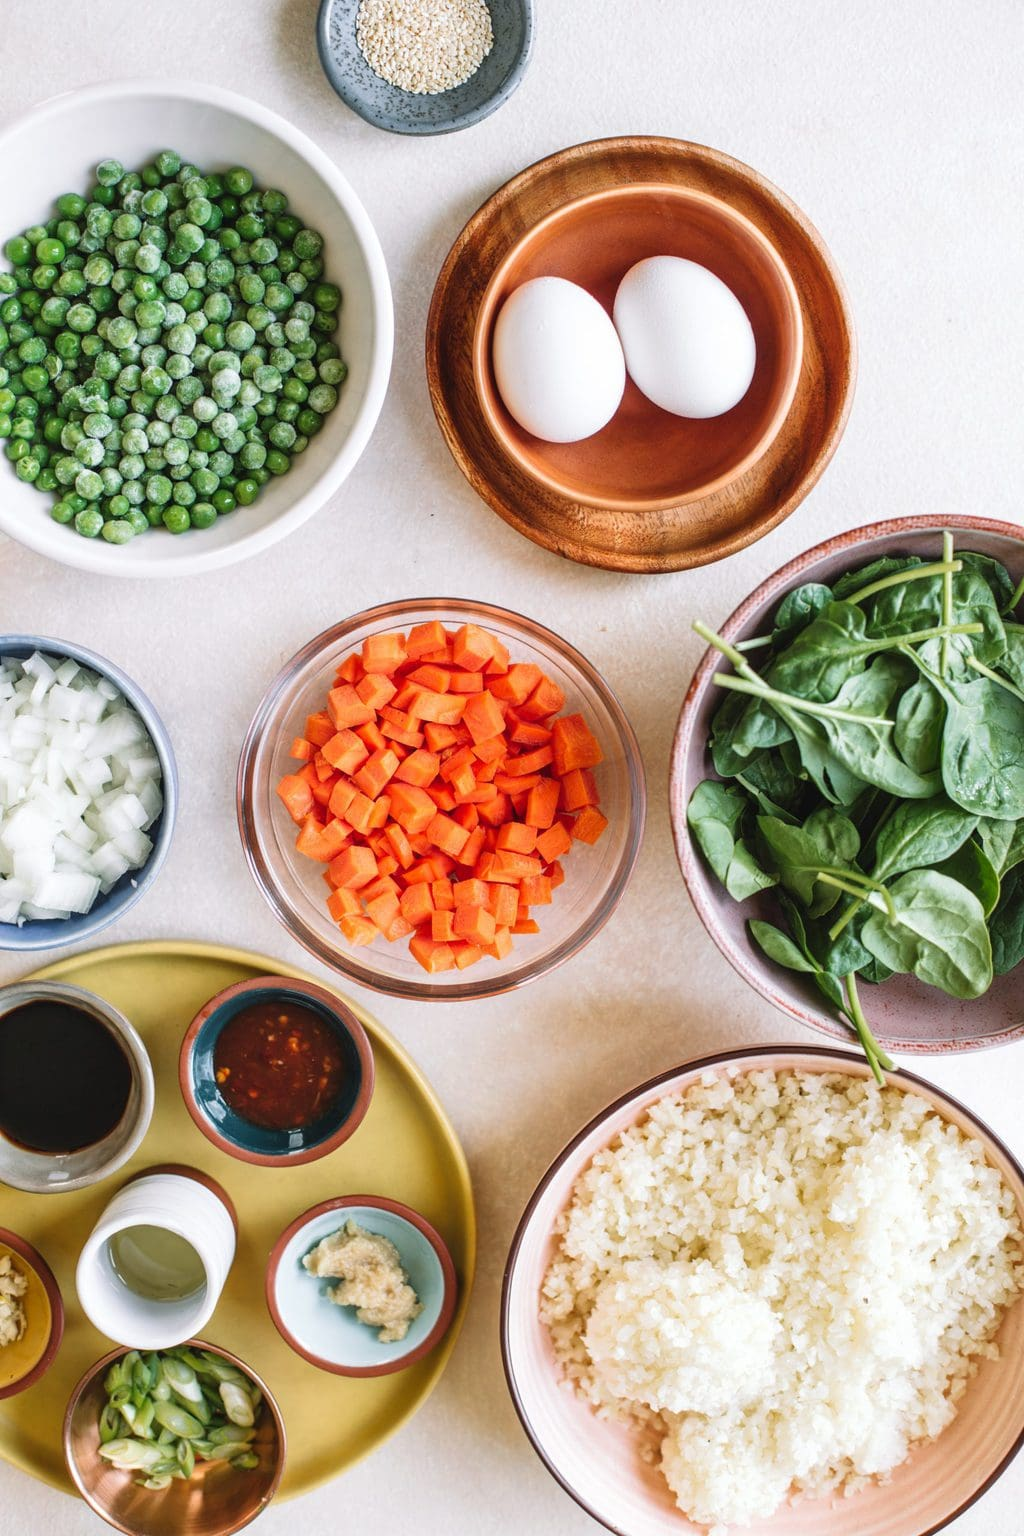 Ingredients in different sized bowls for cauliflower fried rice.